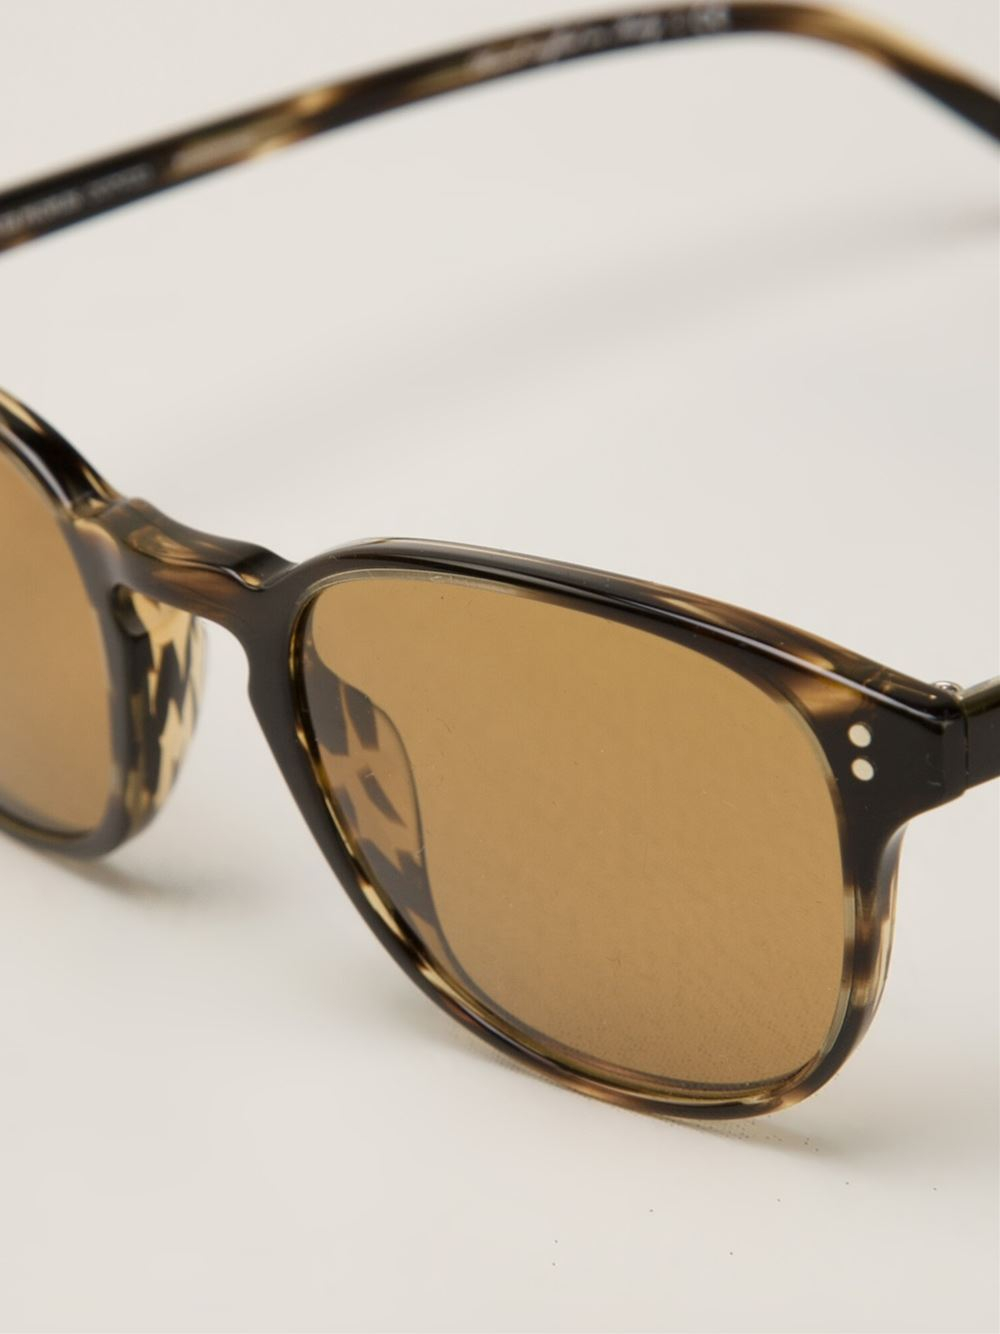 Oliver Peoples Fairmont Sun Sunglasses in Brown